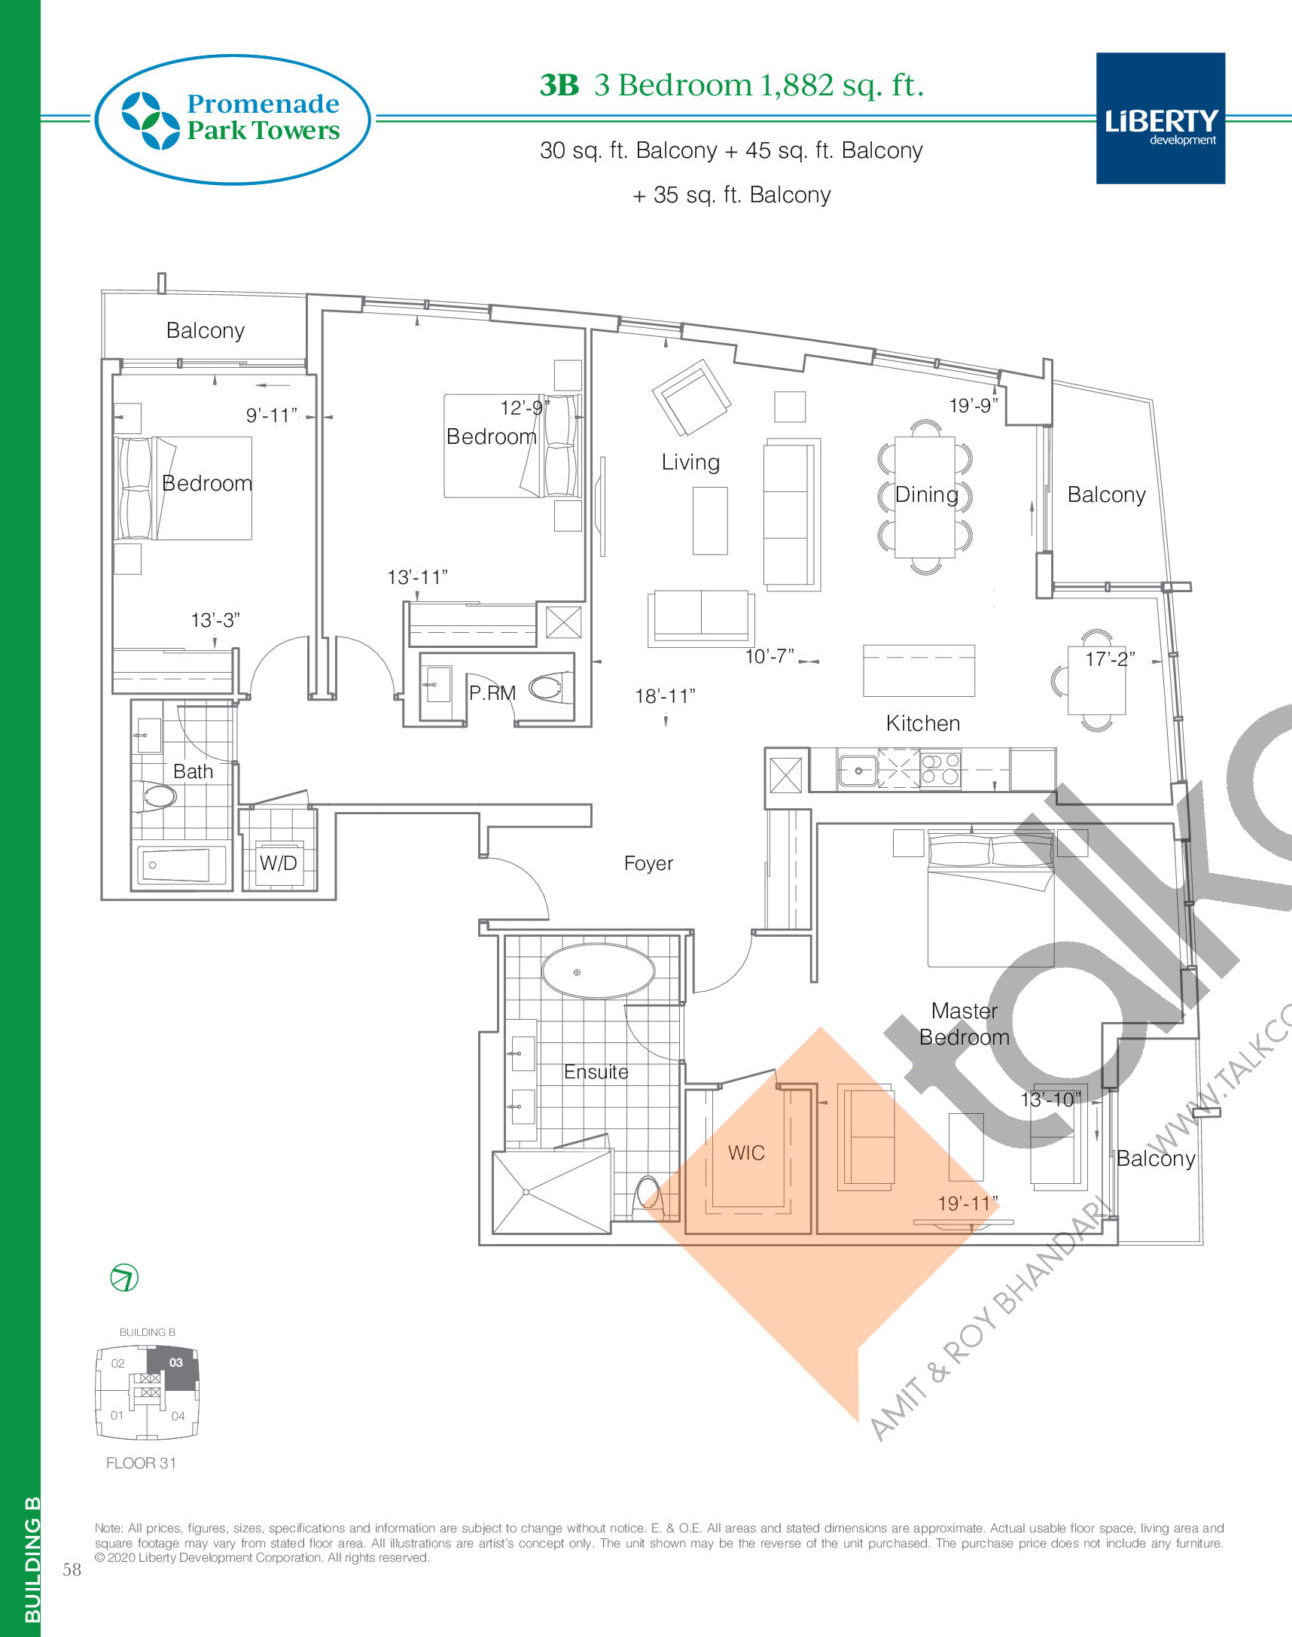 3B Floor Plan at Promenade Park Towers Phase 2 Condos - 1882 sq.ft